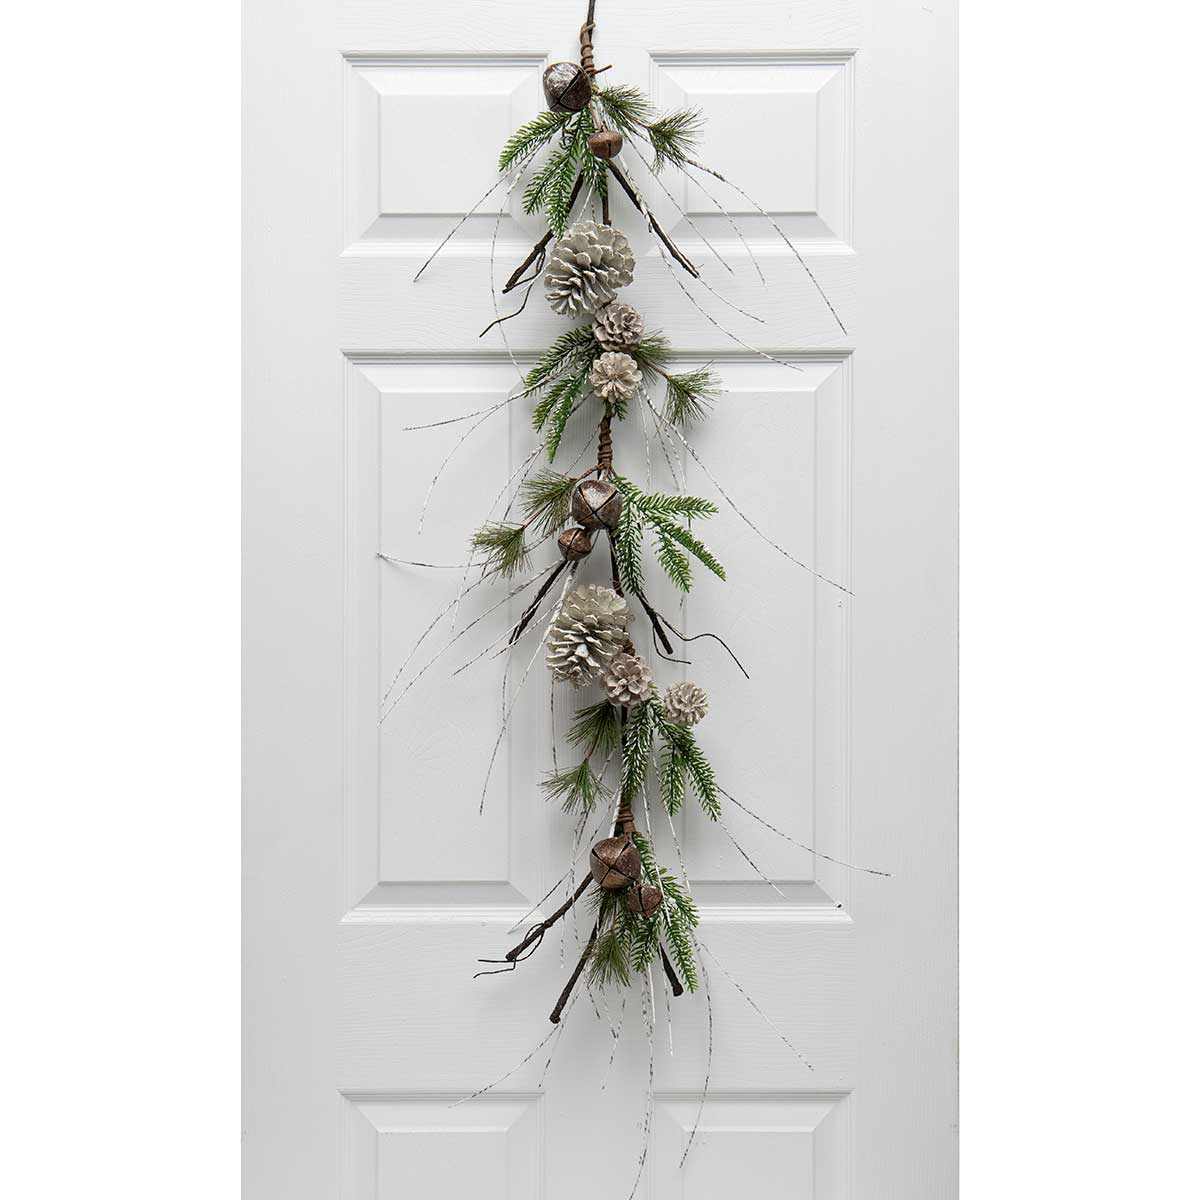 BIRCH & PINE GARLAND WITH JINGLE